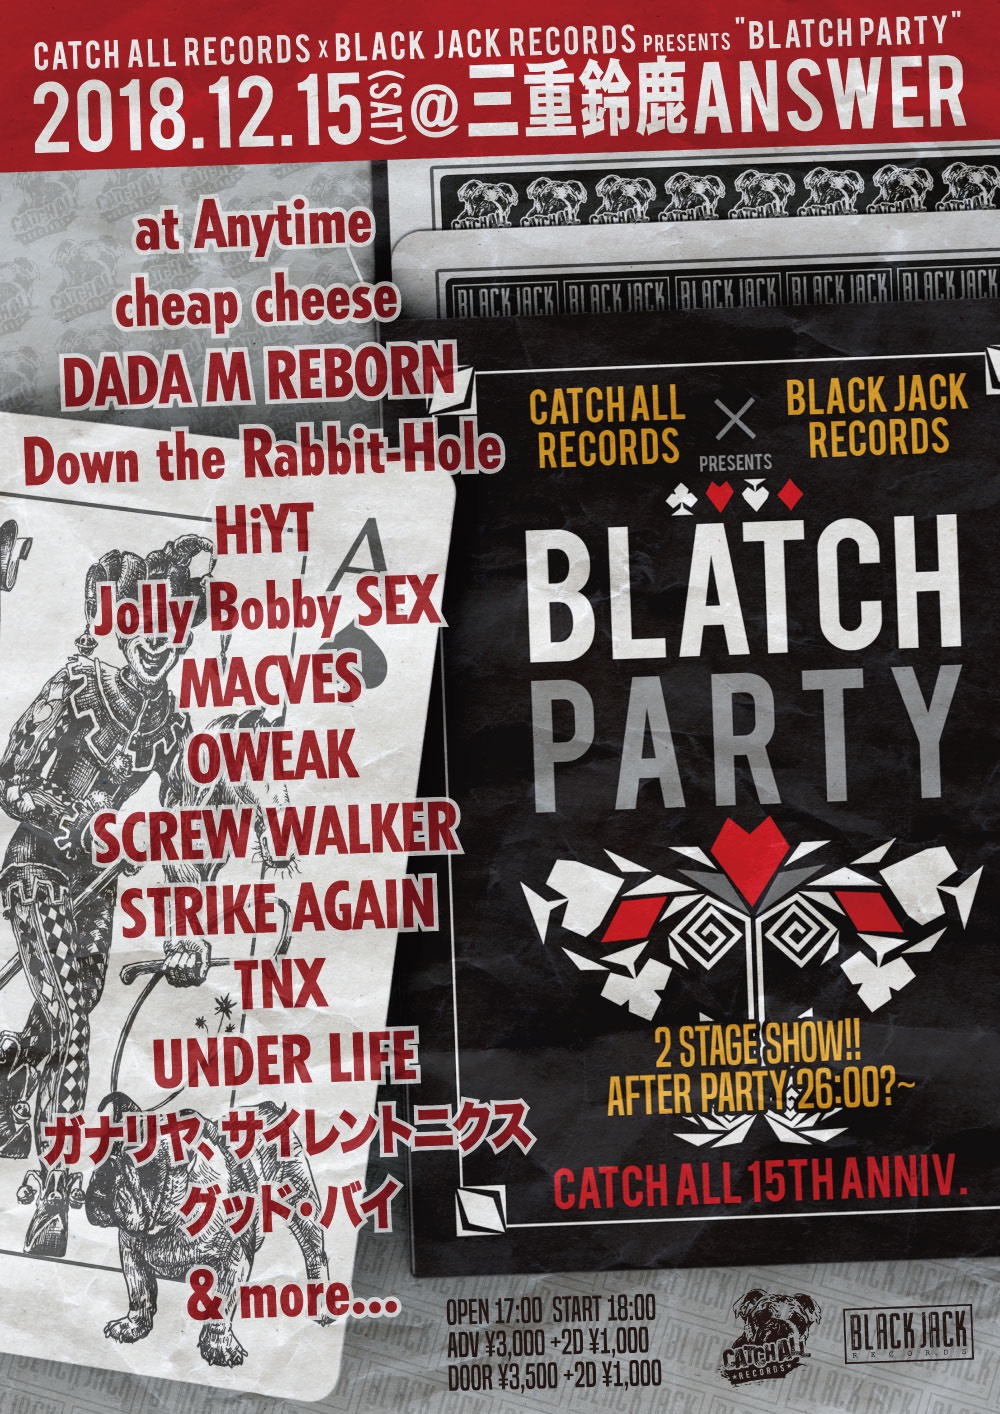 BLATCH PARTY